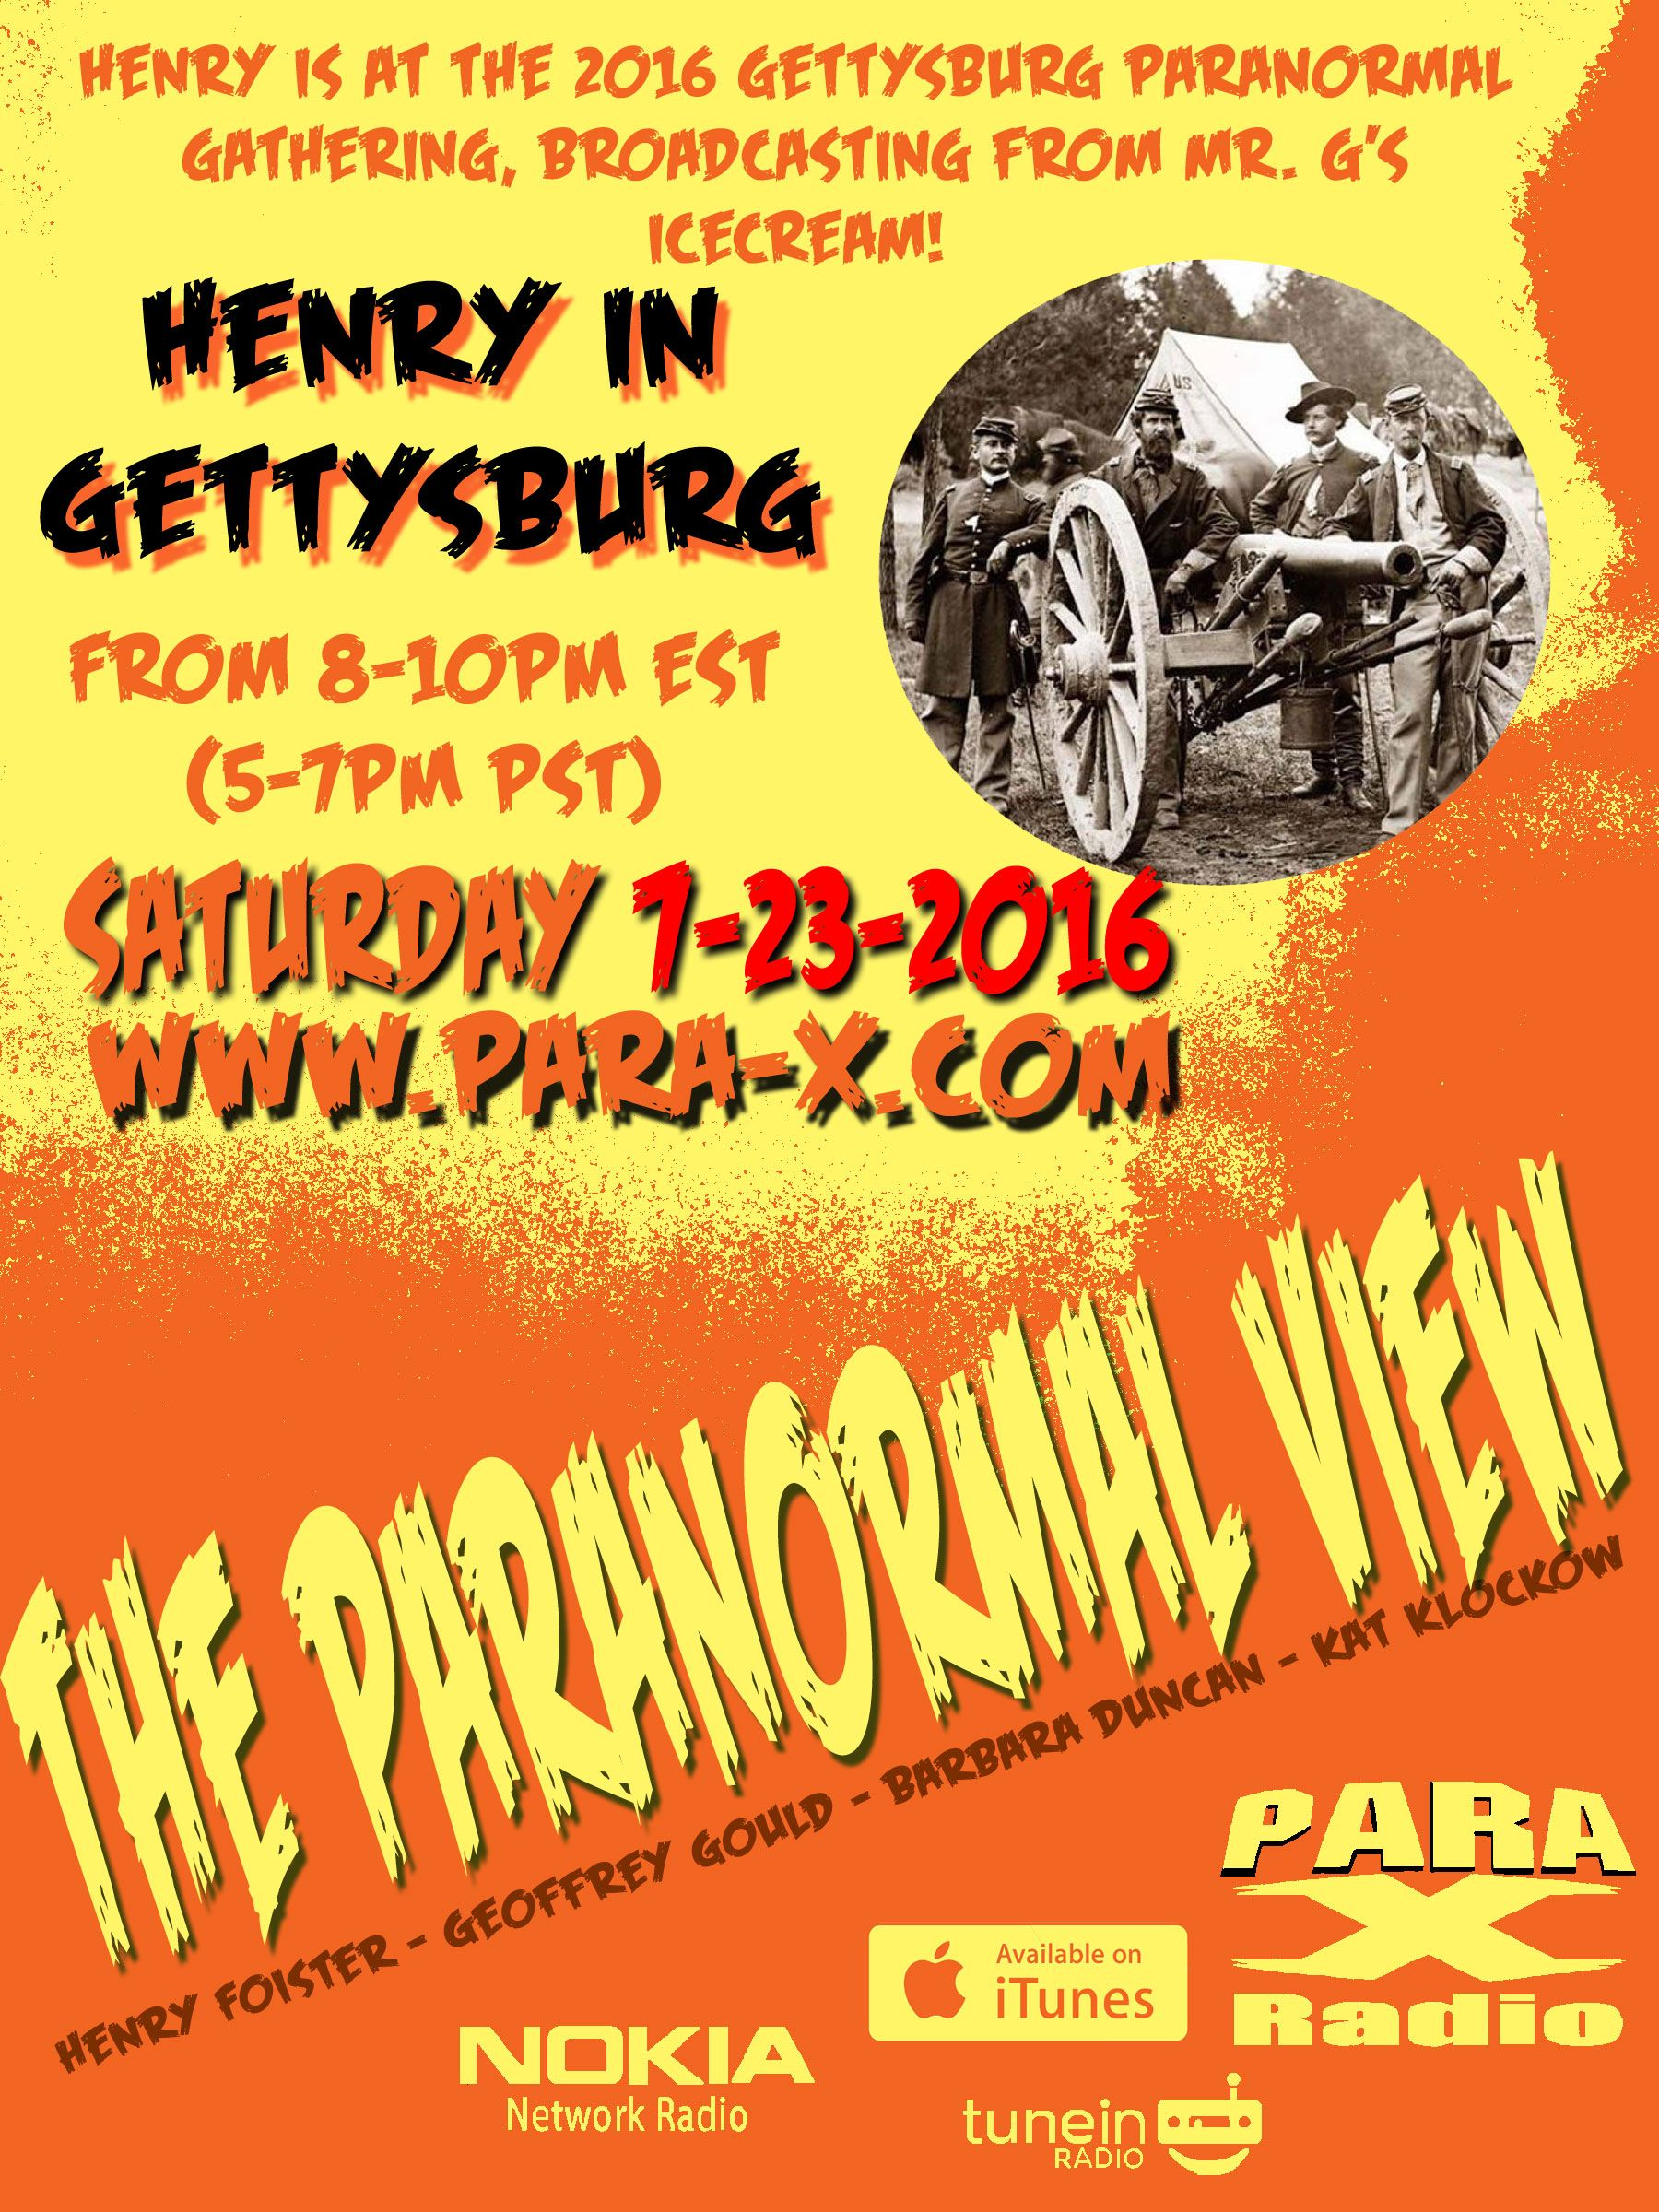 Hennry live at Mr. G's Ice Cream Parlour at the John Winebrenner House in Gettysburg, Pennsylvania